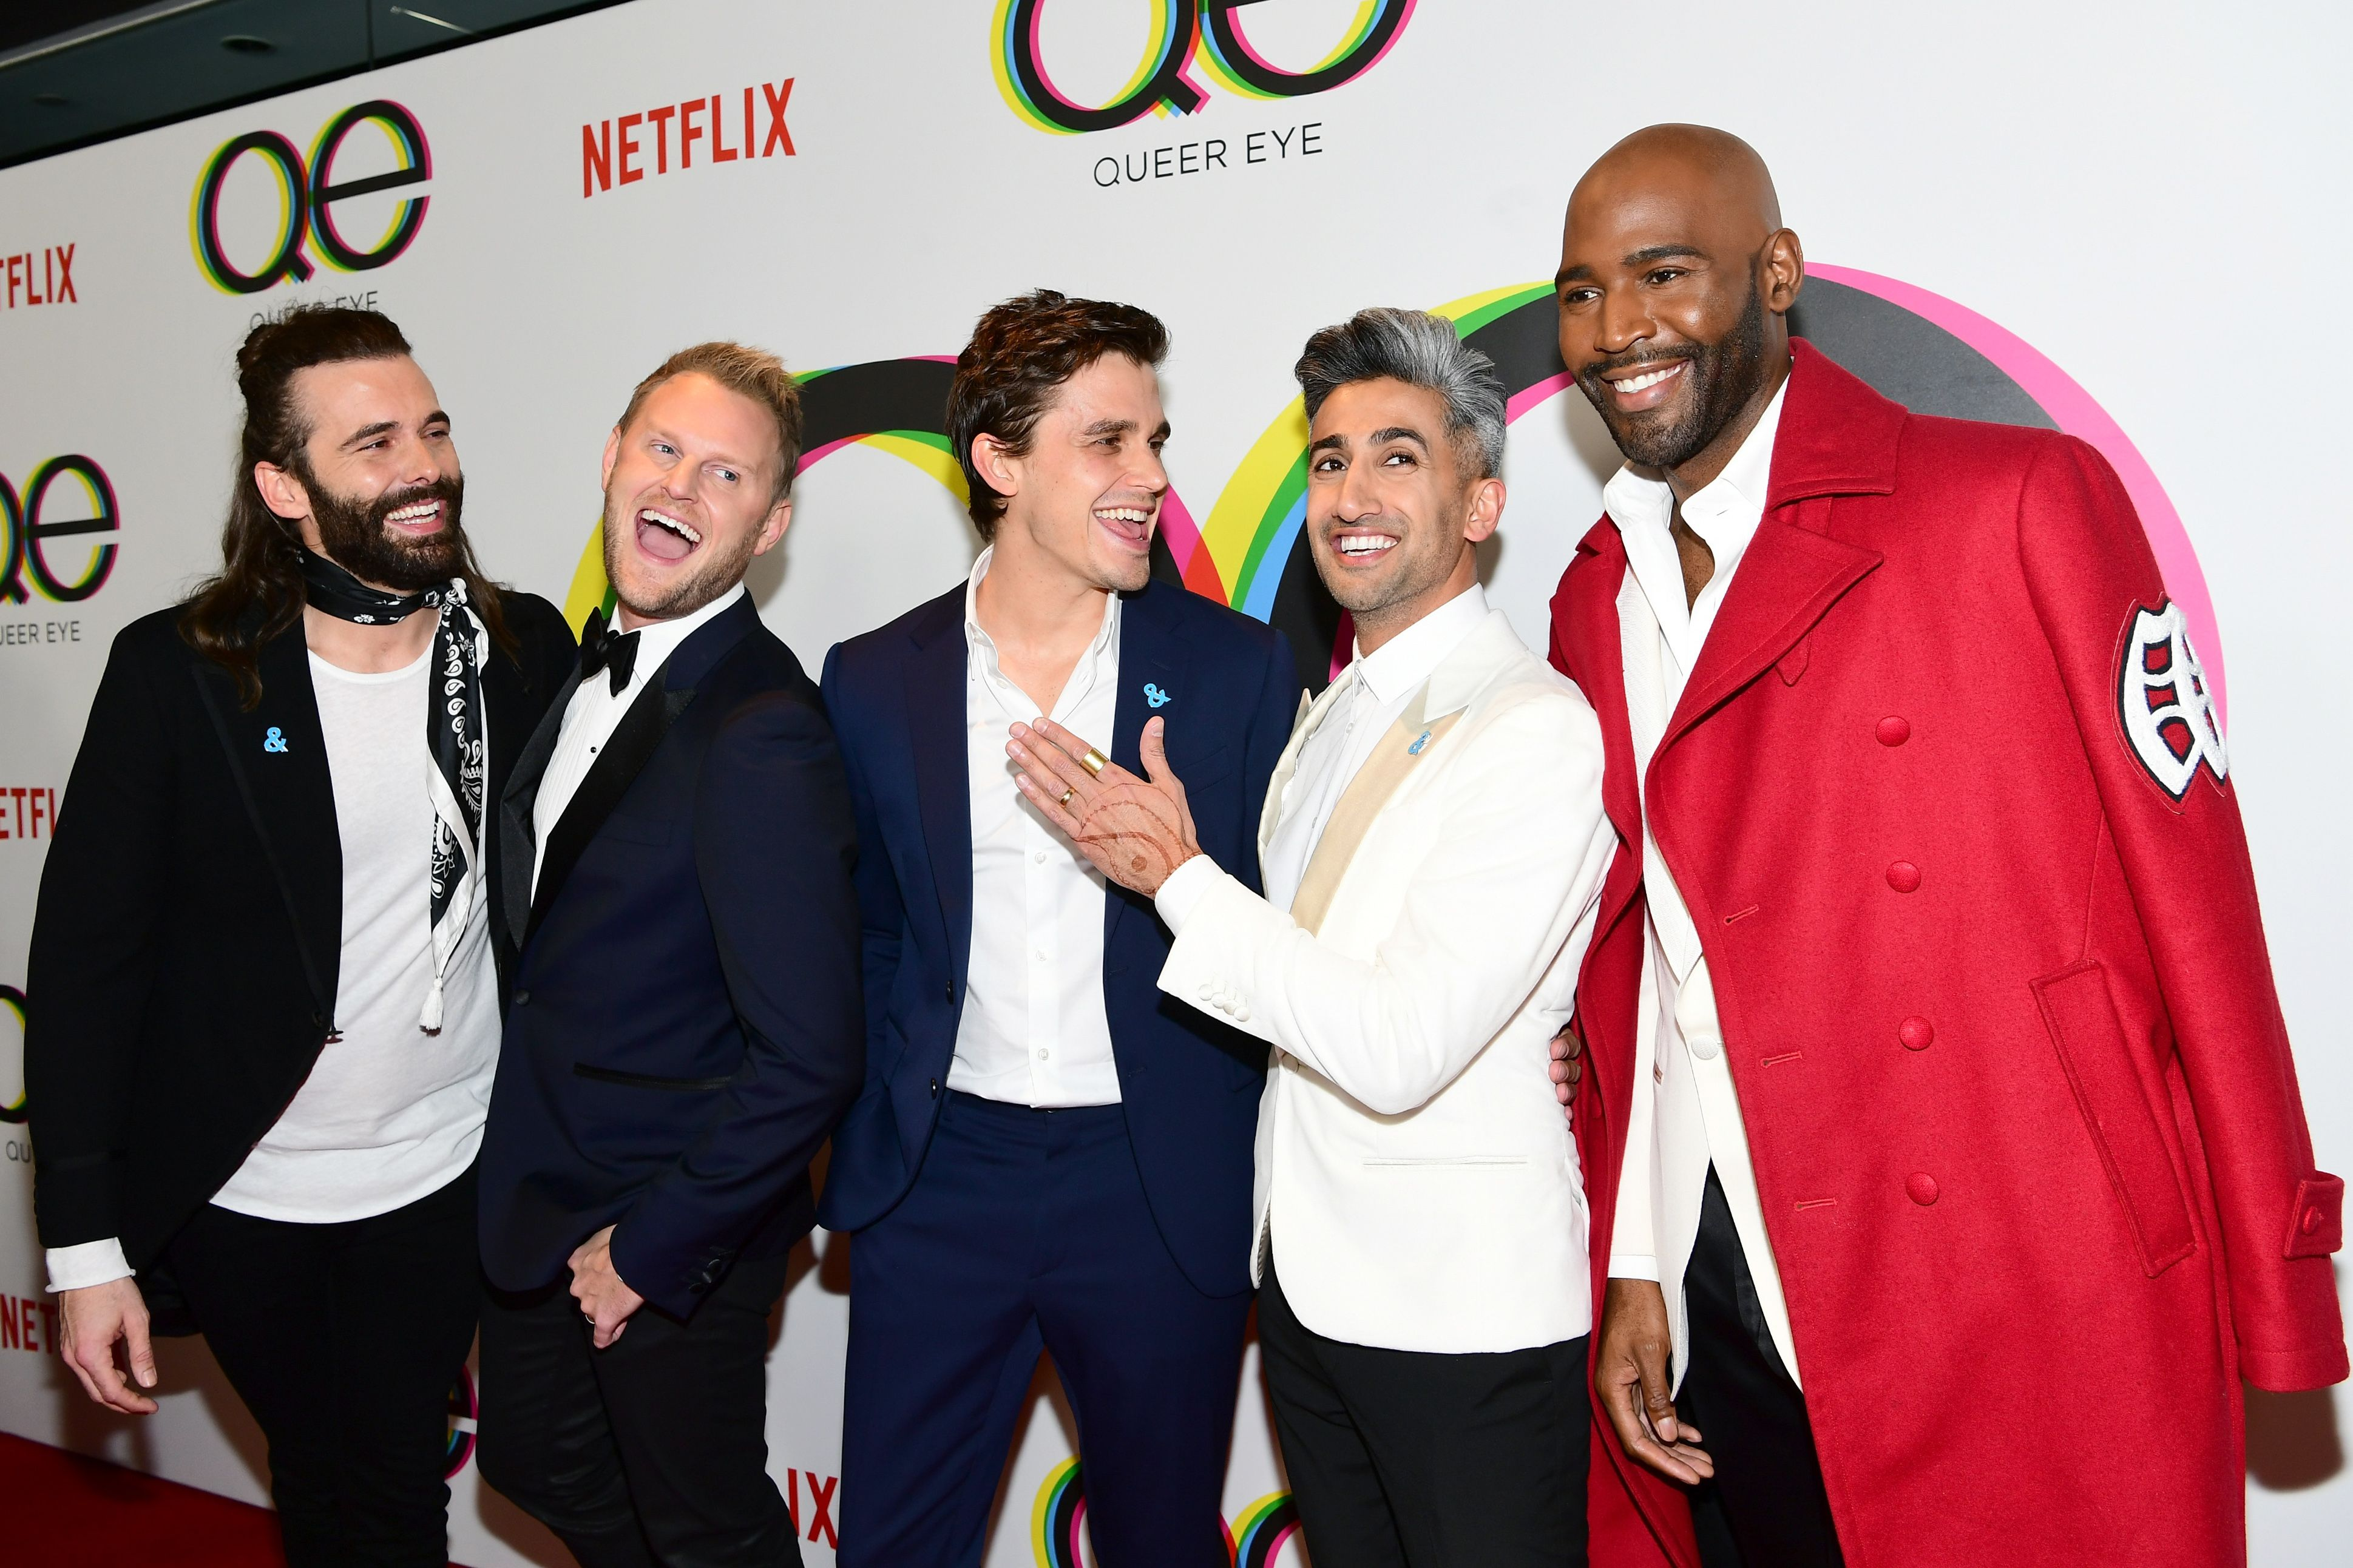 'Queer Eye' Has Been Renewed for Two More Seasons and I'm Already Crying